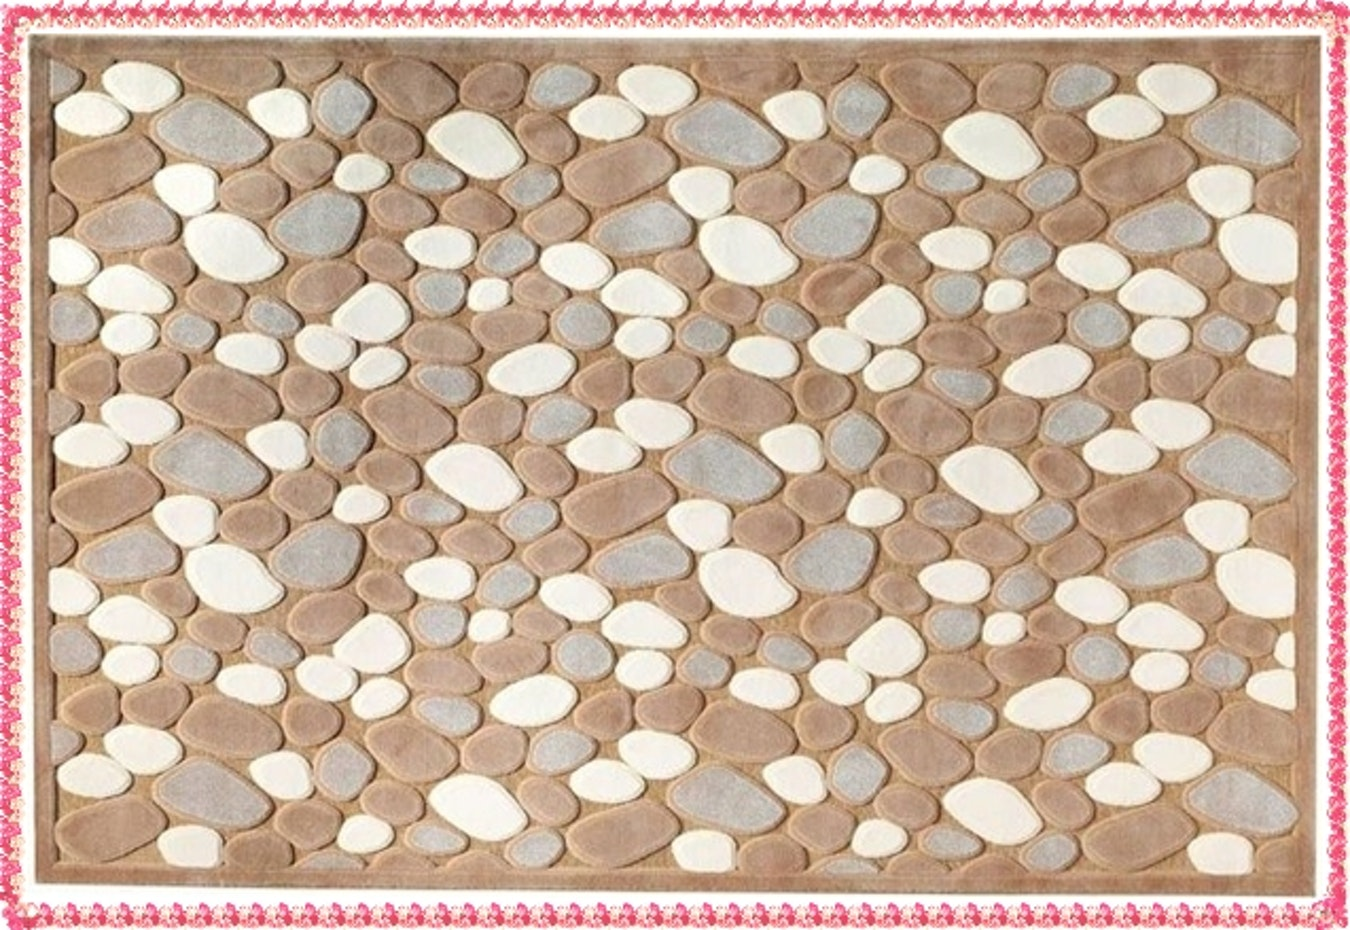 new carpet design stone patterned carpets 2016 designs unorthodox  photograph decoration 3 PPLEZMR